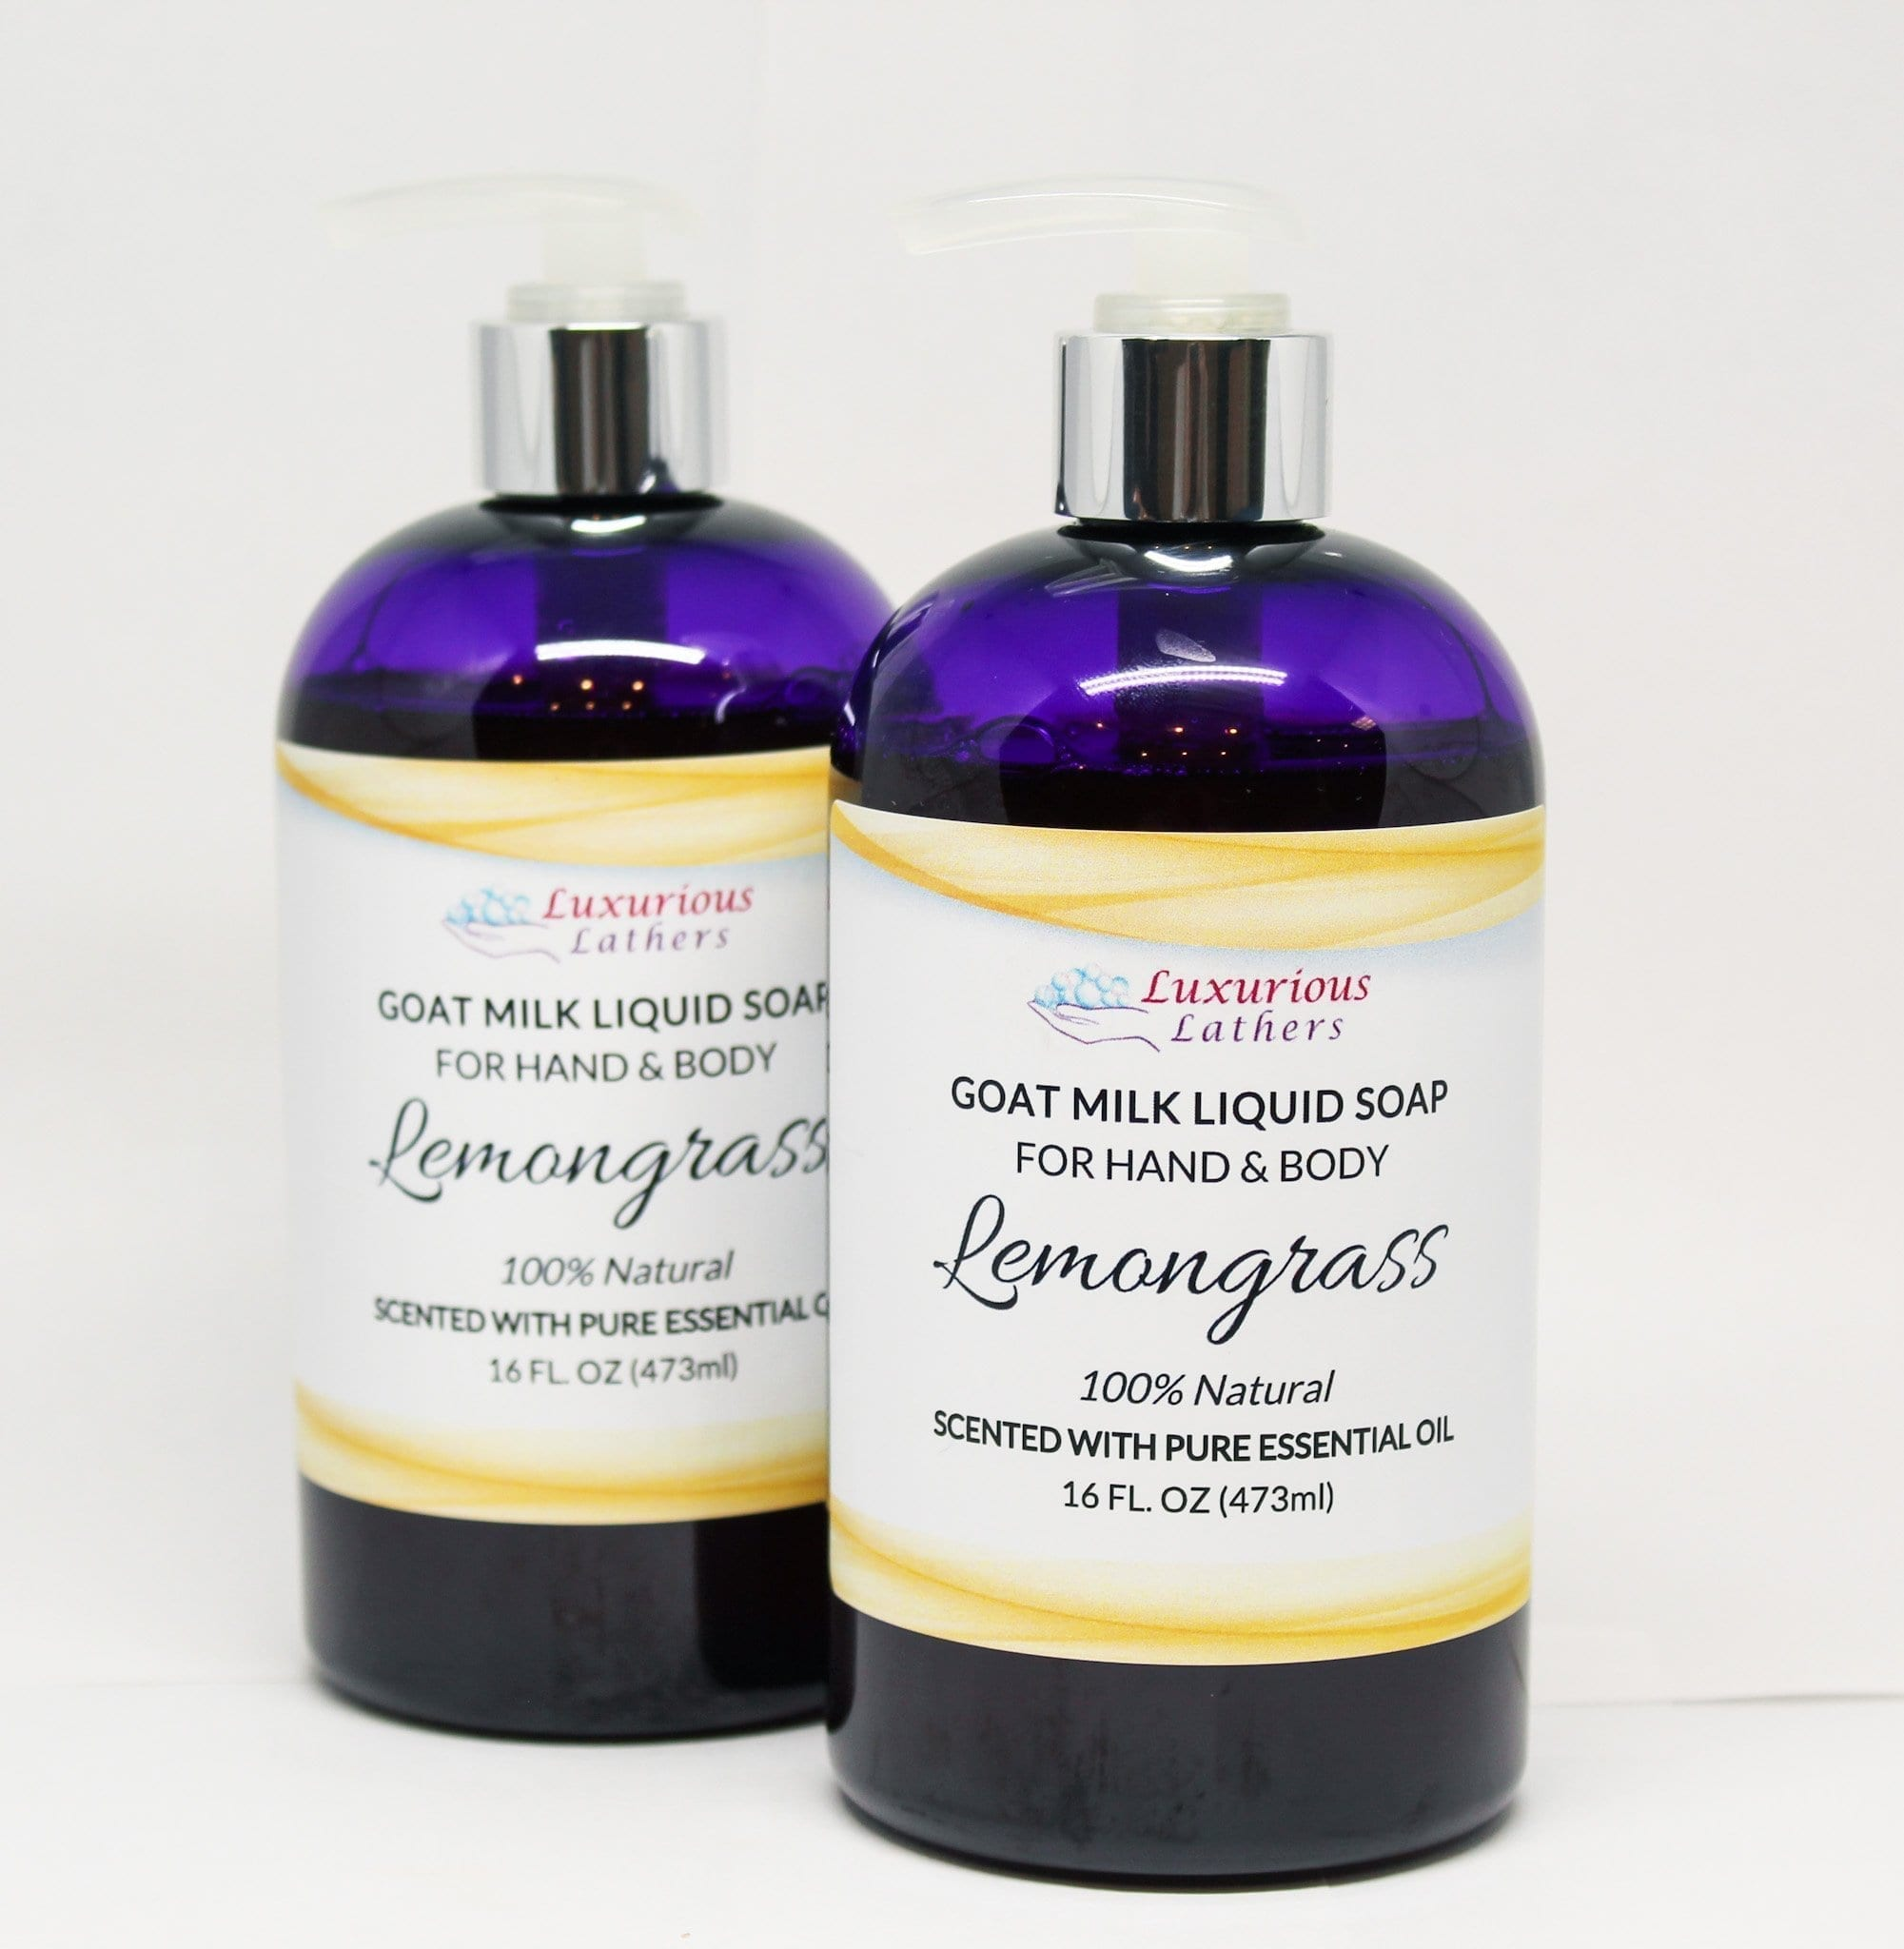 Lemongrass Goat Milk Liquid Soap